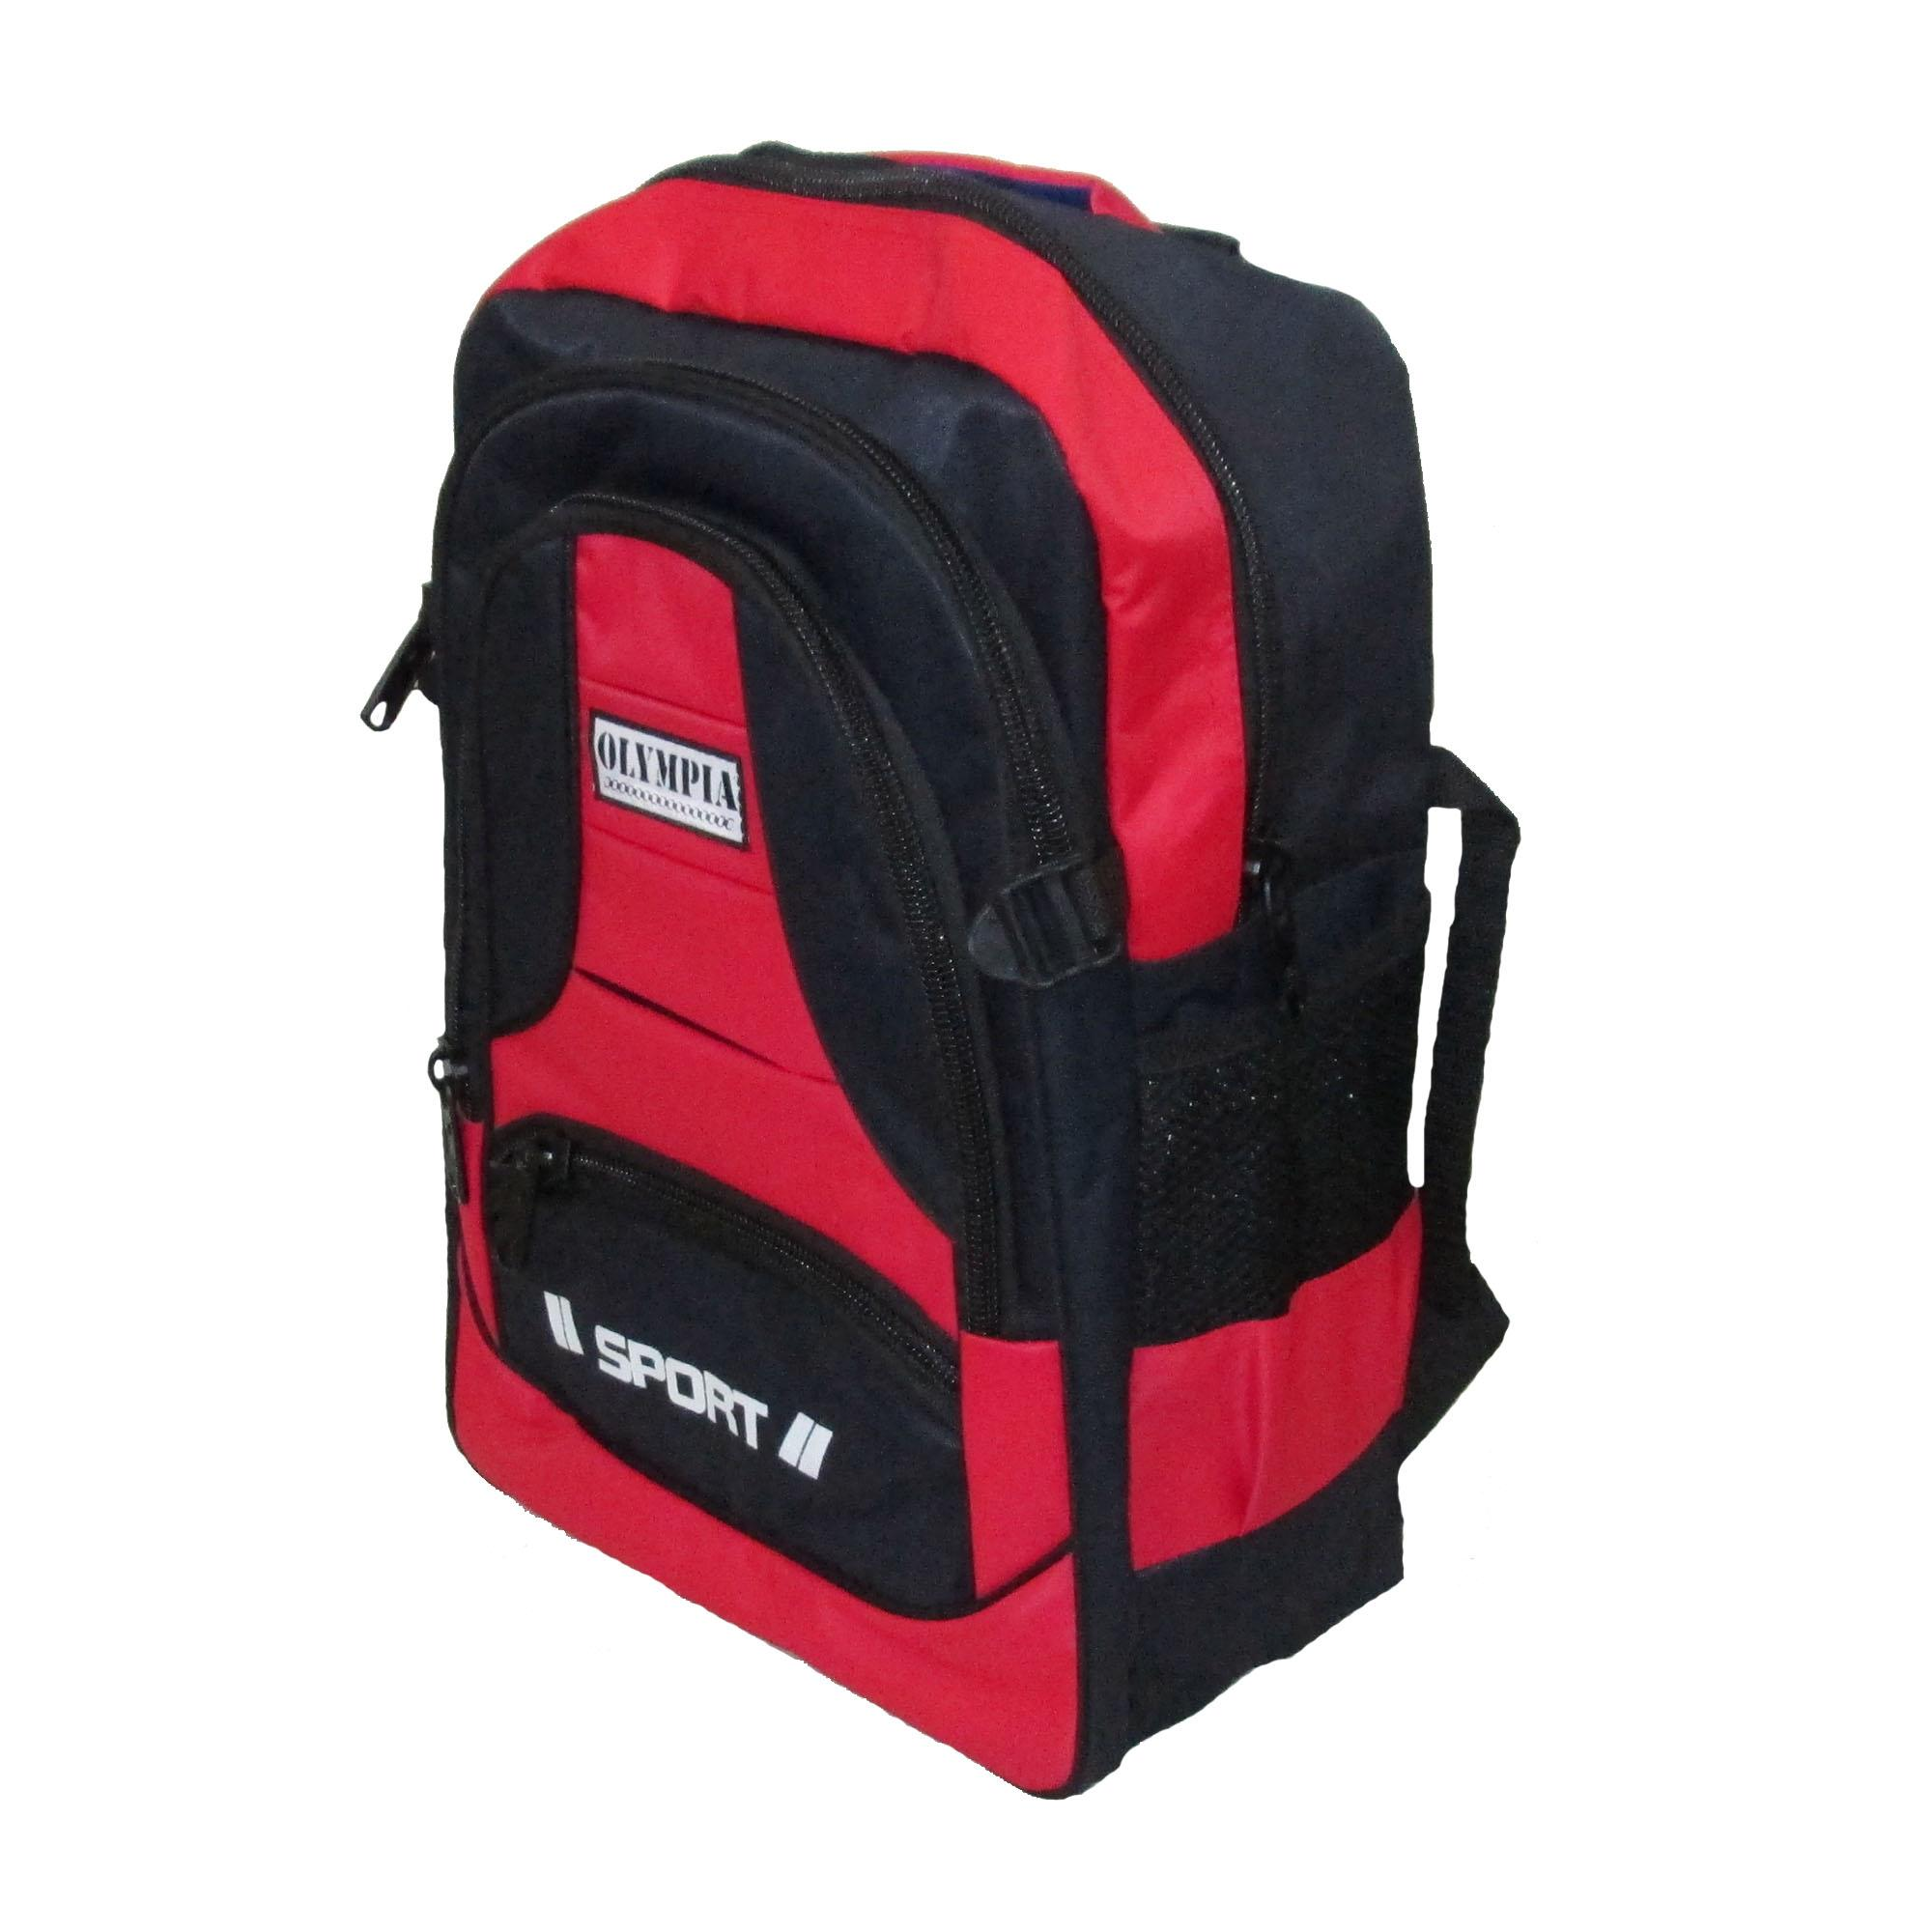 Buy Deals Mart Men Fashion backpacks at Best Prices Online in ... c3f8efd462aaa